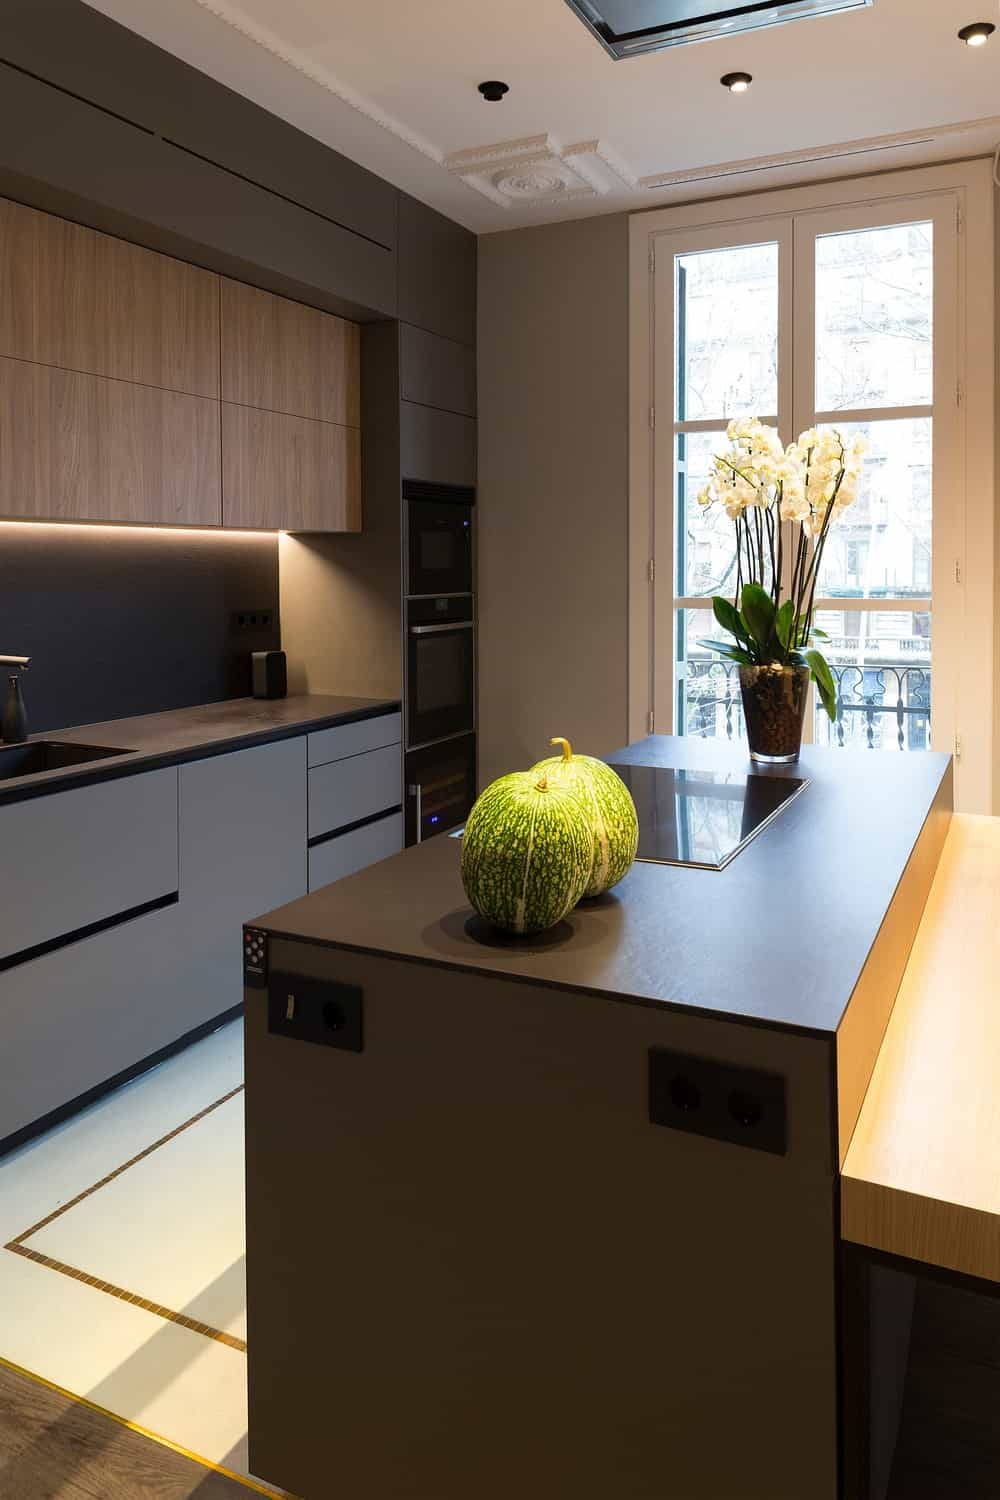 This is a close look at the modern kitchen that has matte cabinetry that goes well with the dark modern appliances embedded into the cabinetry and island.